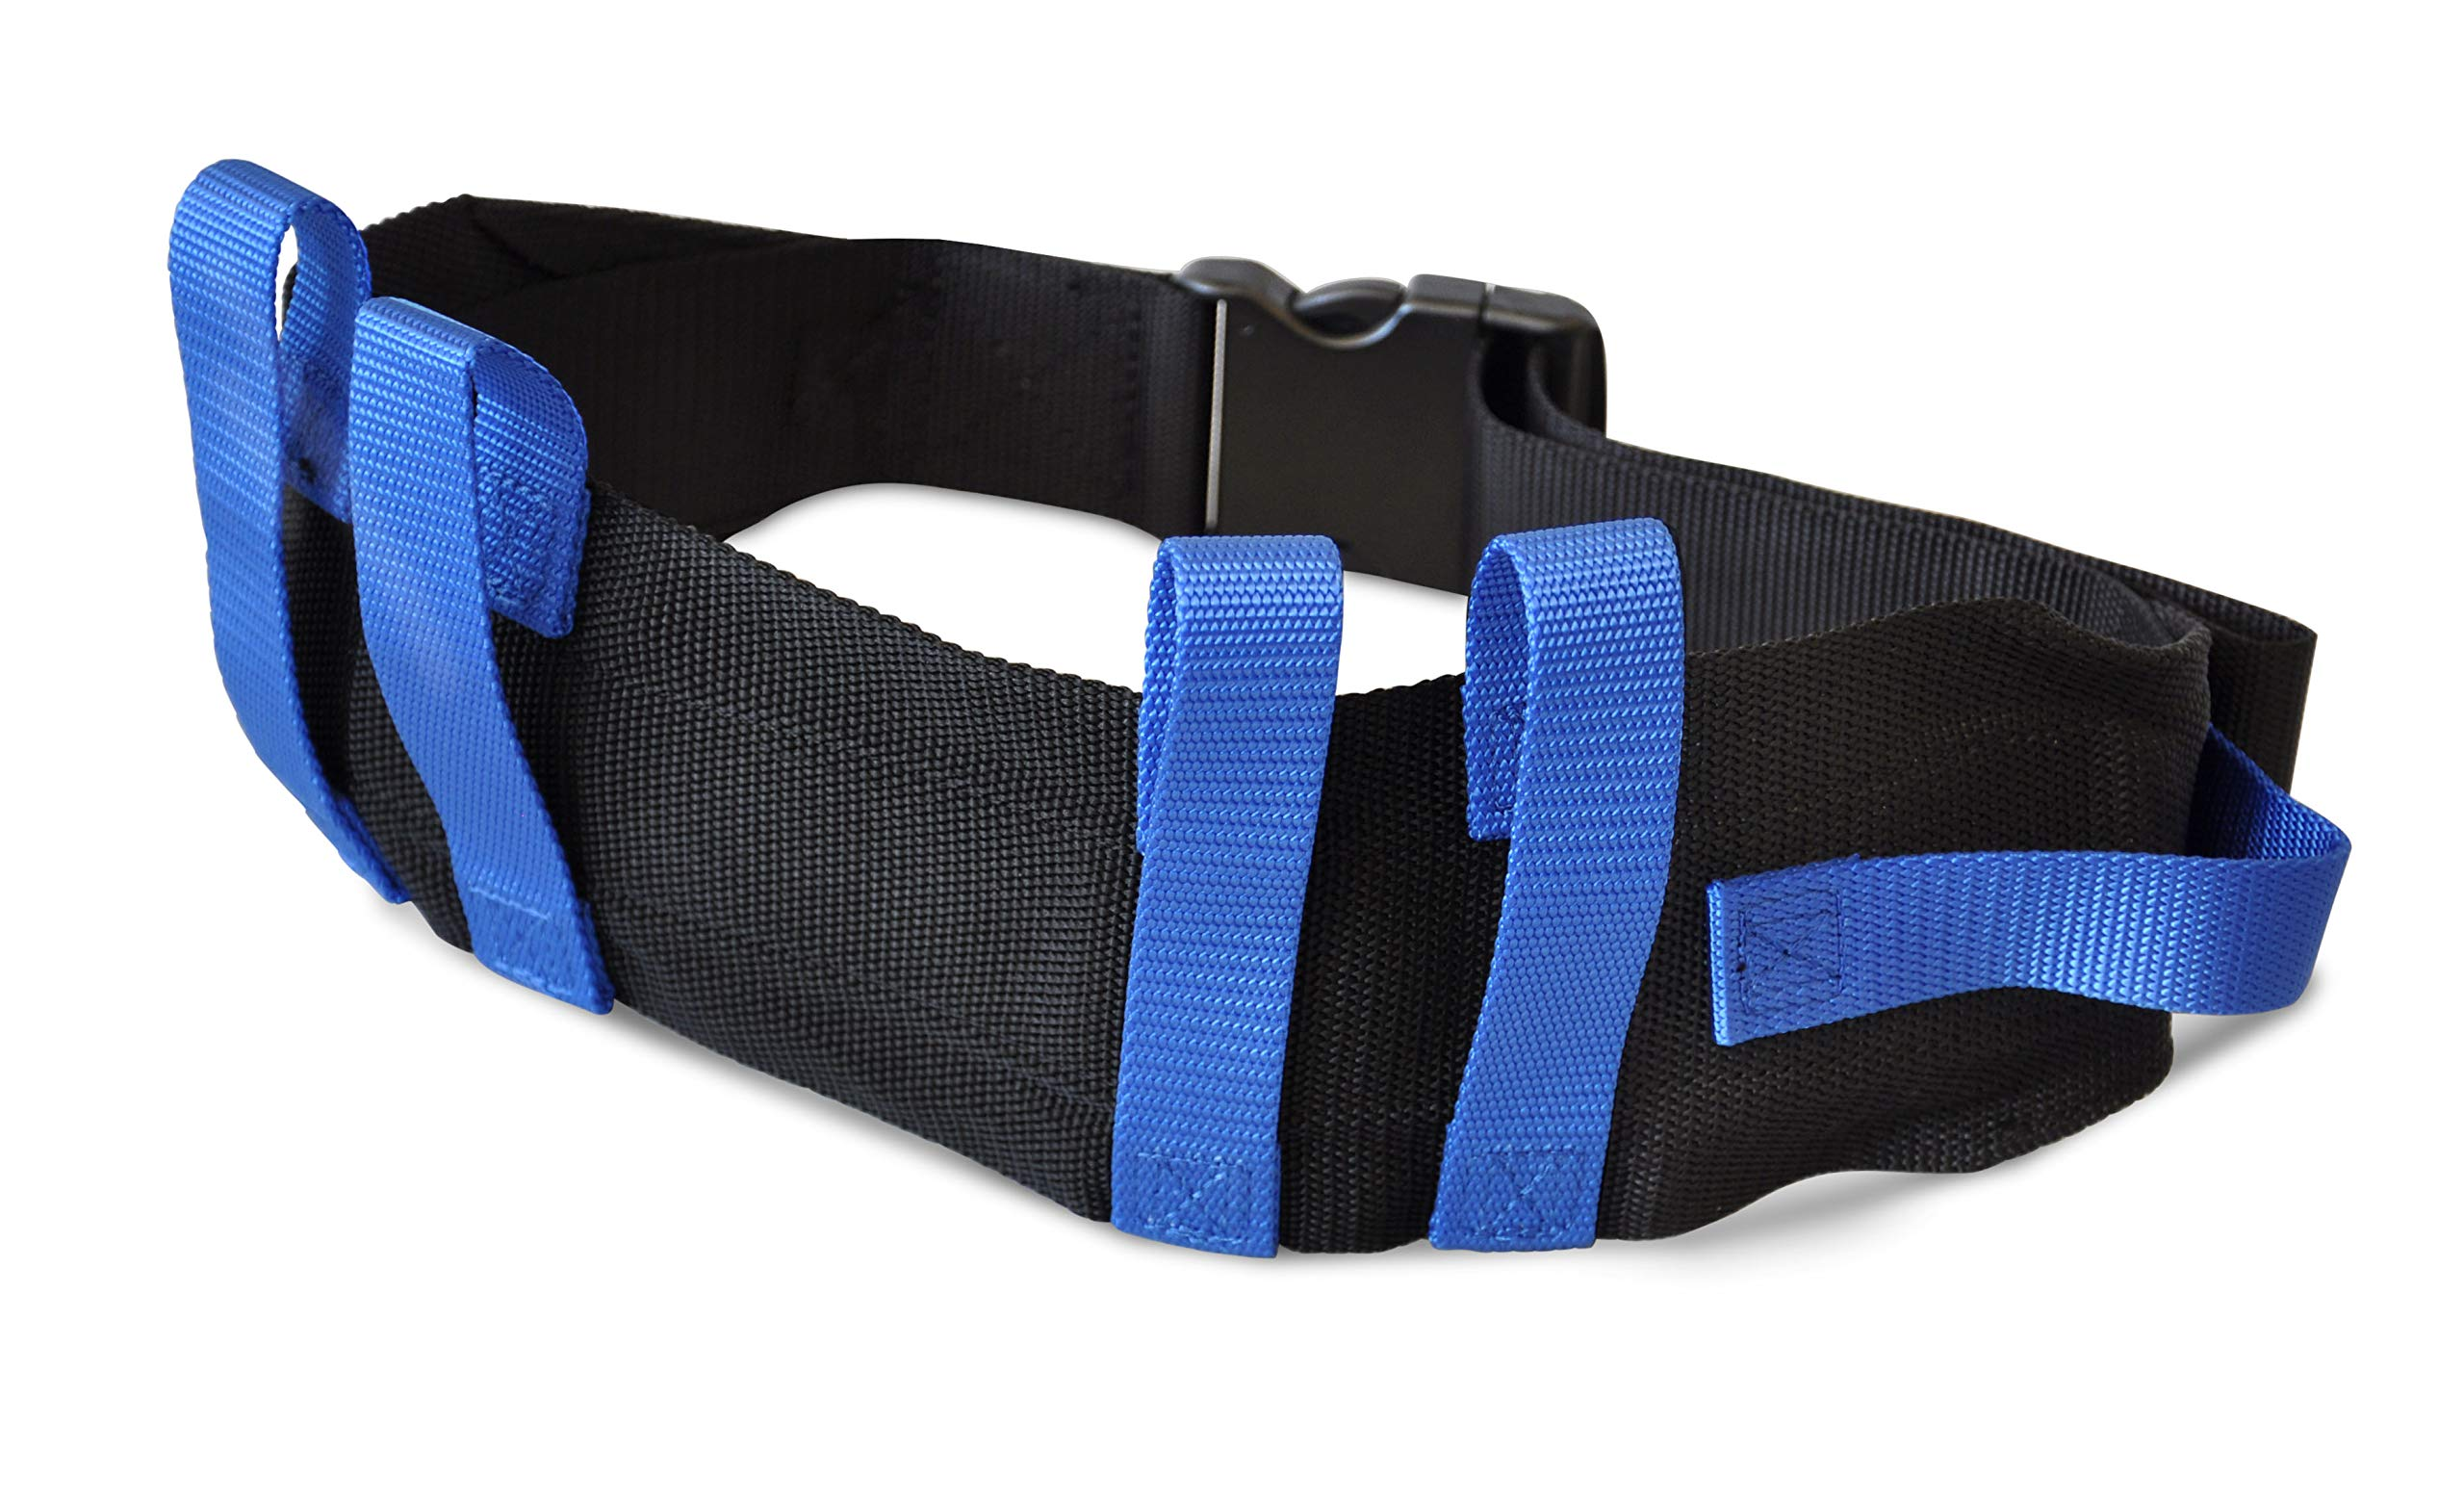 NYOrtho Transfer Gait Belt with 6 Handles - Quick Release Buckle for Elderly and Patient Care | Adjustable Size 28'' to 55'' by NYORTHO